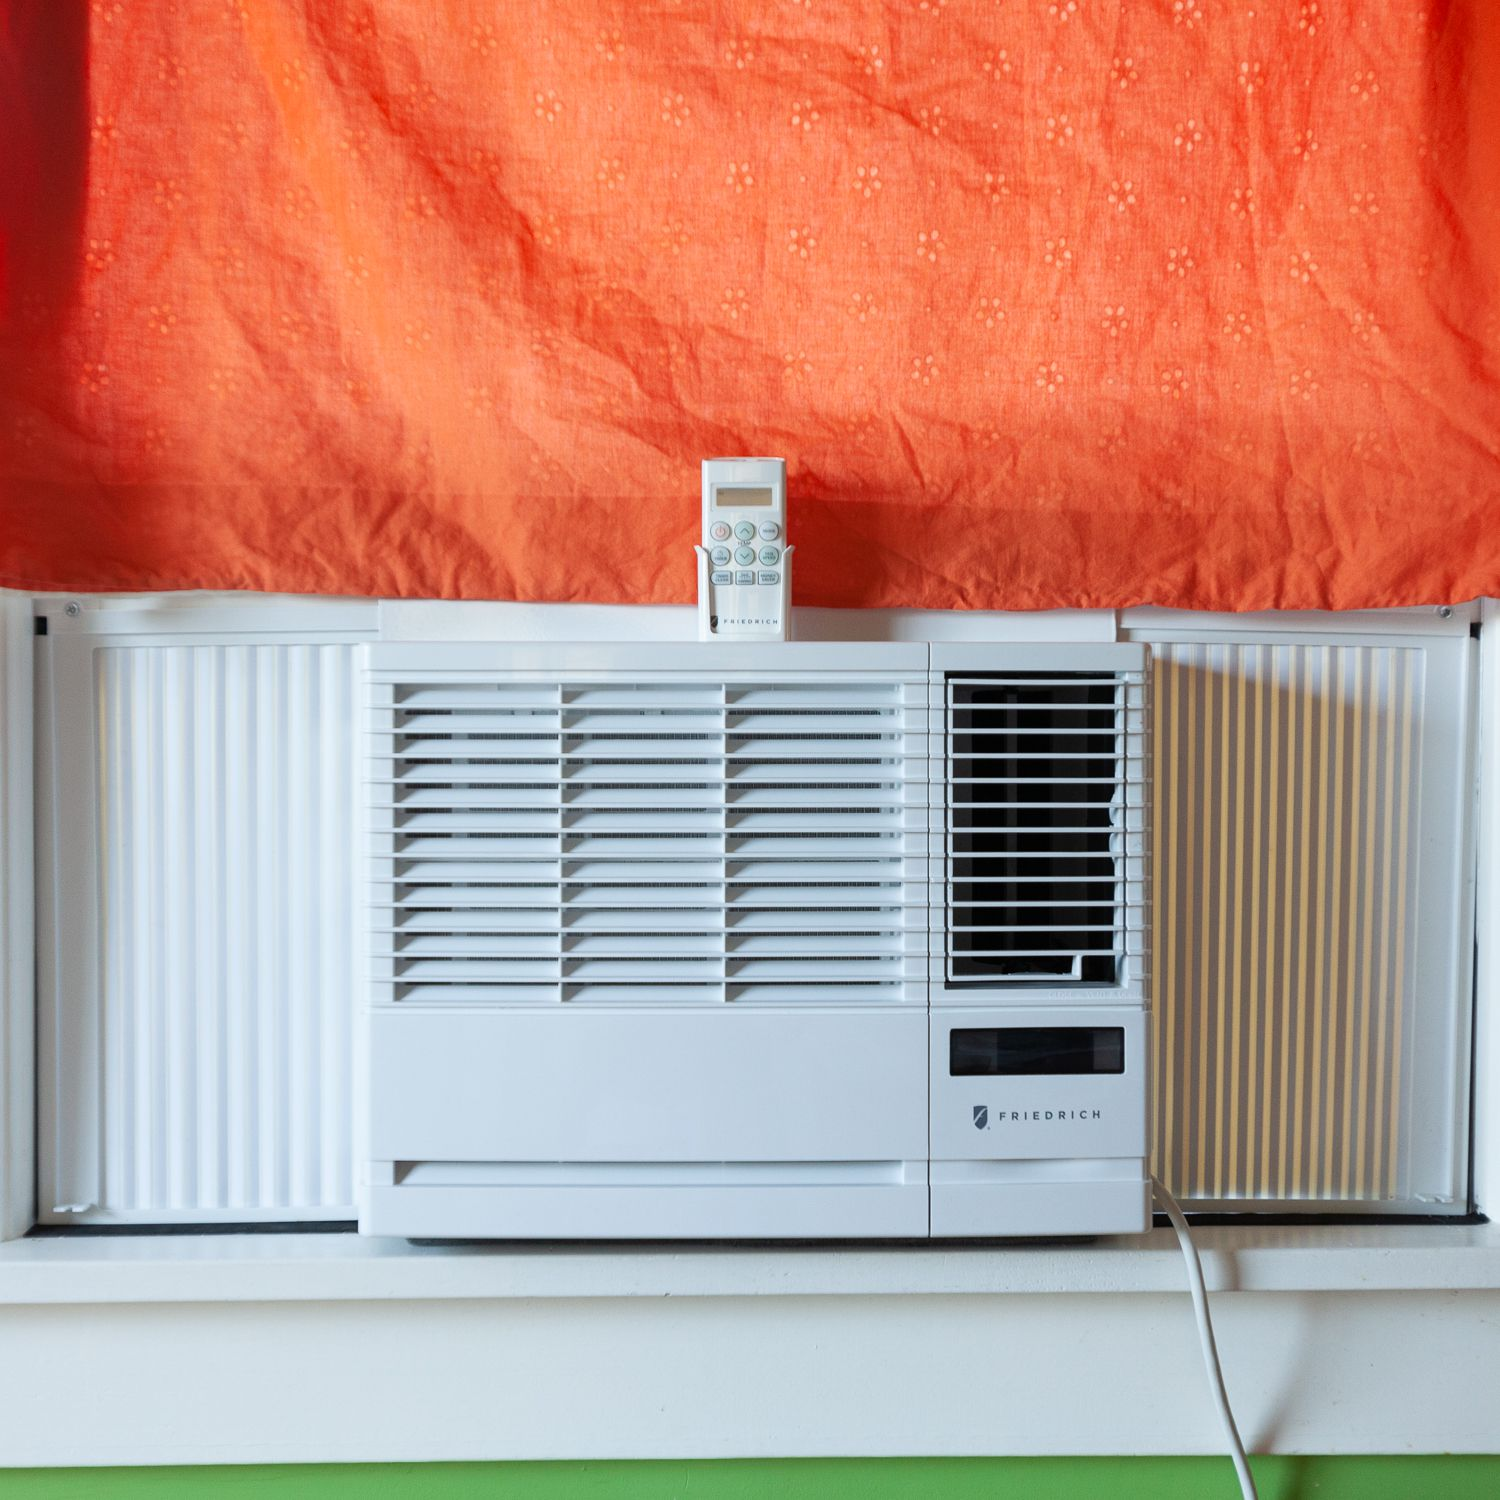 friedrich chill cp06g10b window air conditioner review